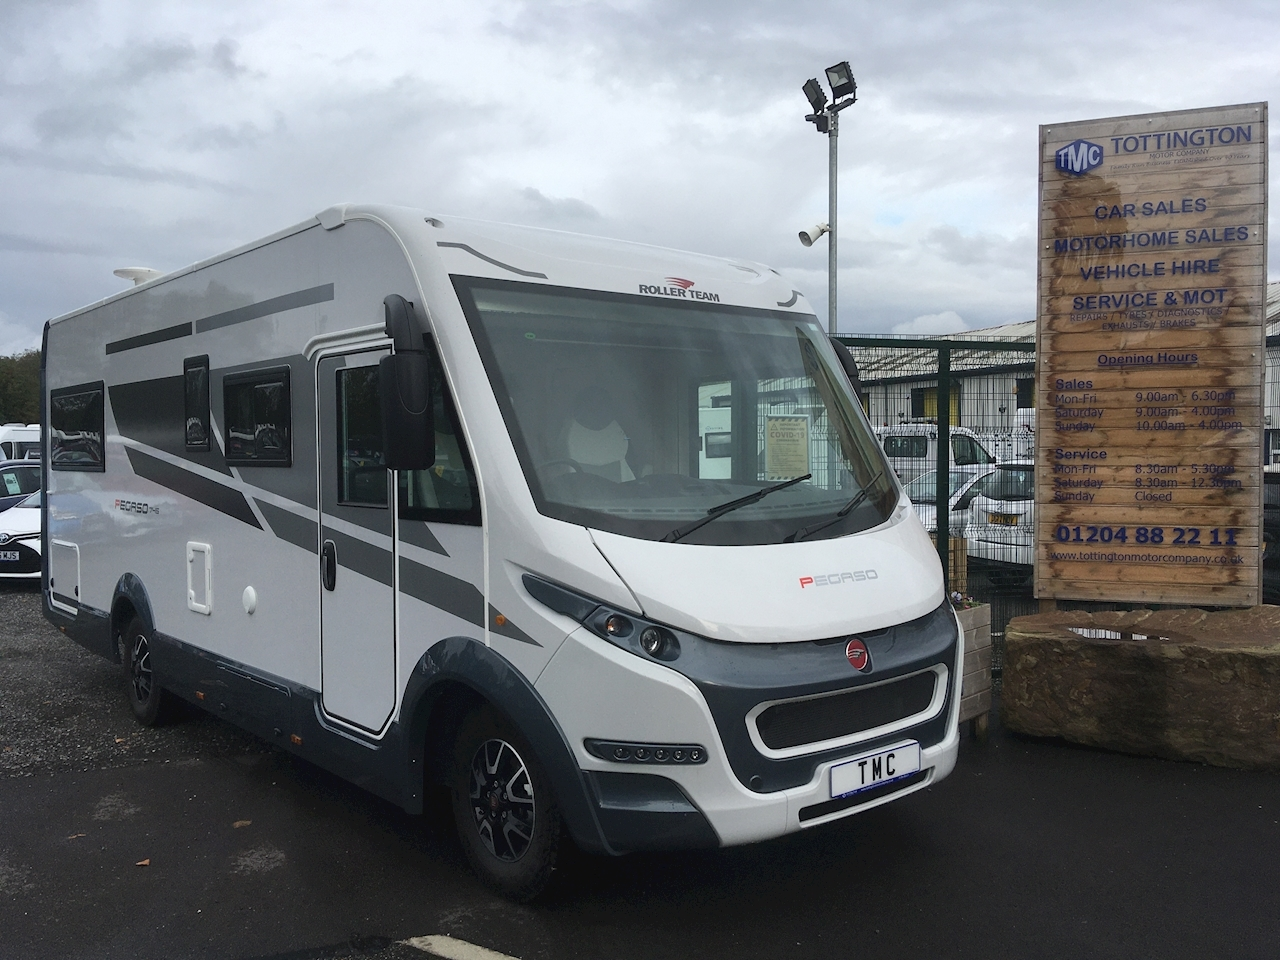 Rollerteam Pegaso 745 (new 2021 Model) Motorhome 2300 Manual Diesel